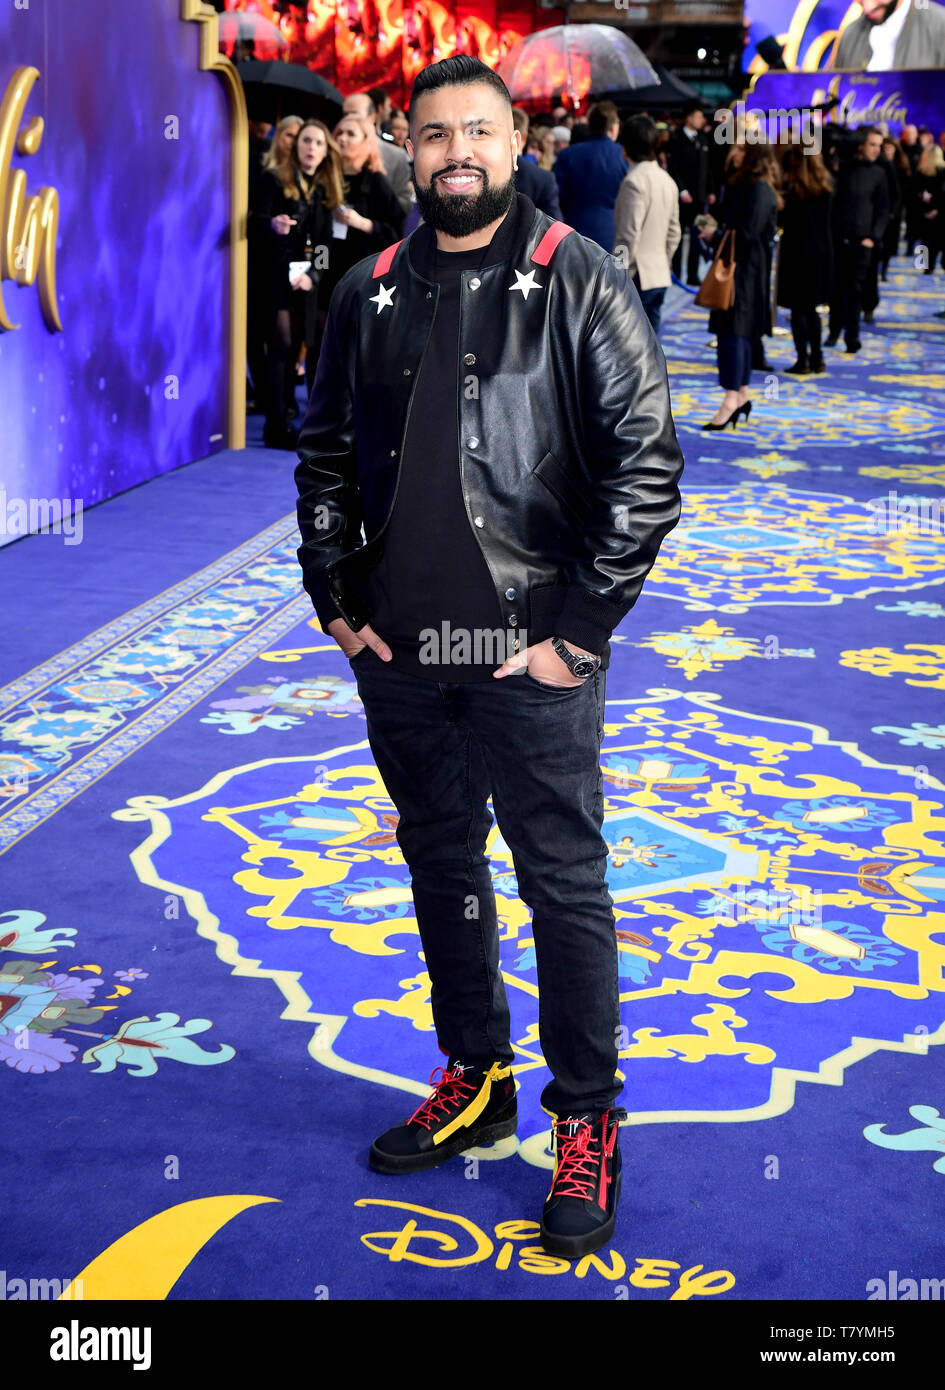 Humza Arshad attending the Aladdin European Premiere held at the Odeon Luxe Leicester Square, London. - Stock Image